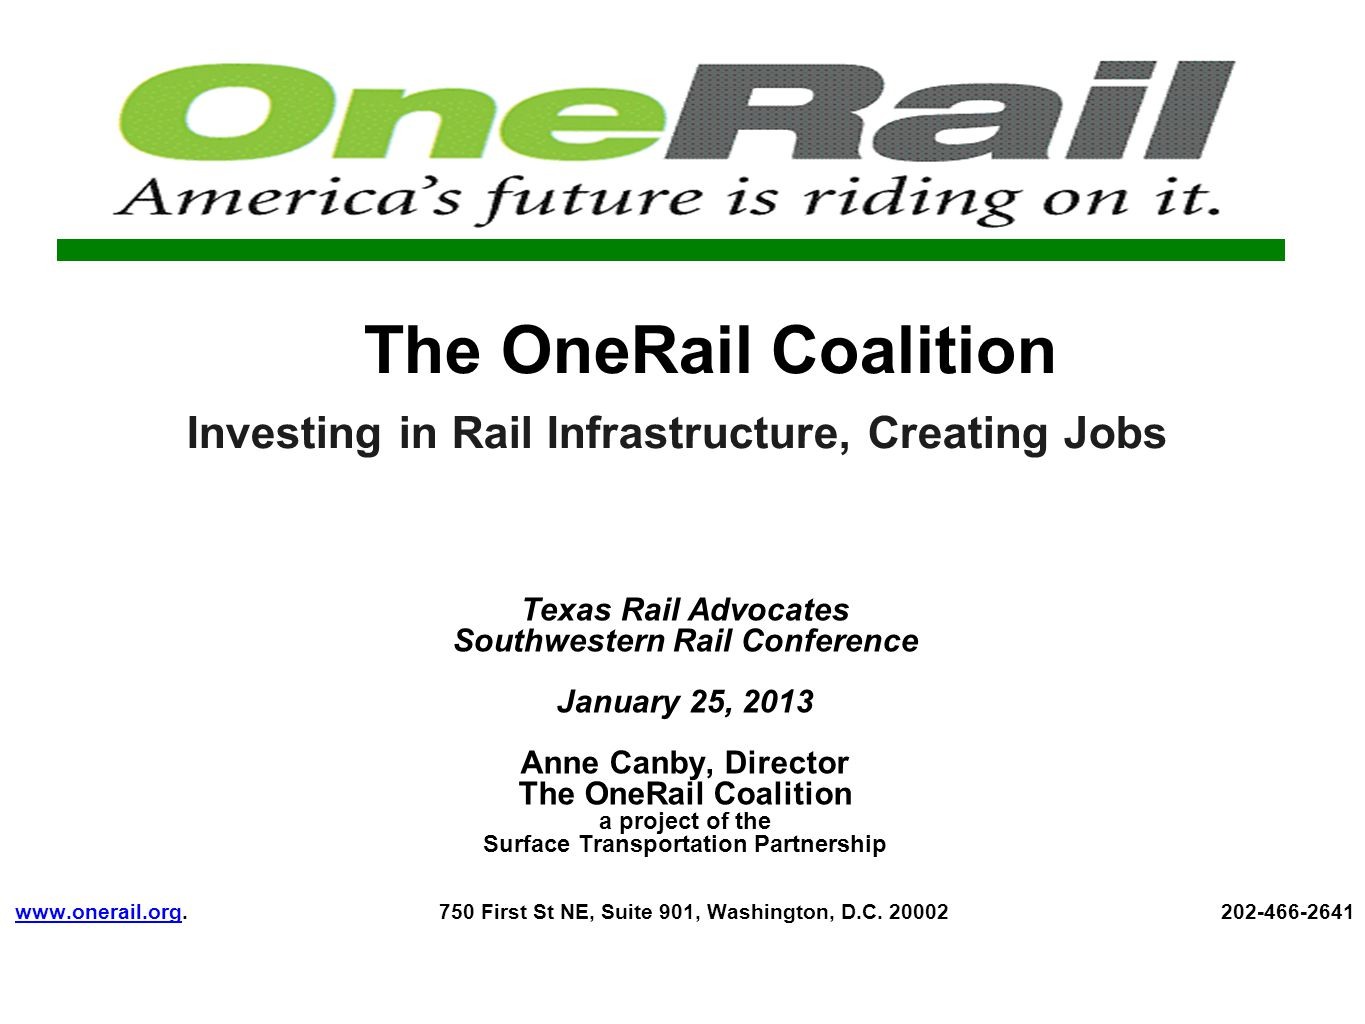 The OneRail Coalition Investing in Rail Infrastructure, Creating Jobs Texas Rail Advocates Southwestern Rail Conference January 25, 2013 Anne Canby, Director The OneRail Coalition a project of the Surface Transportation Partnership www.onerail.org.